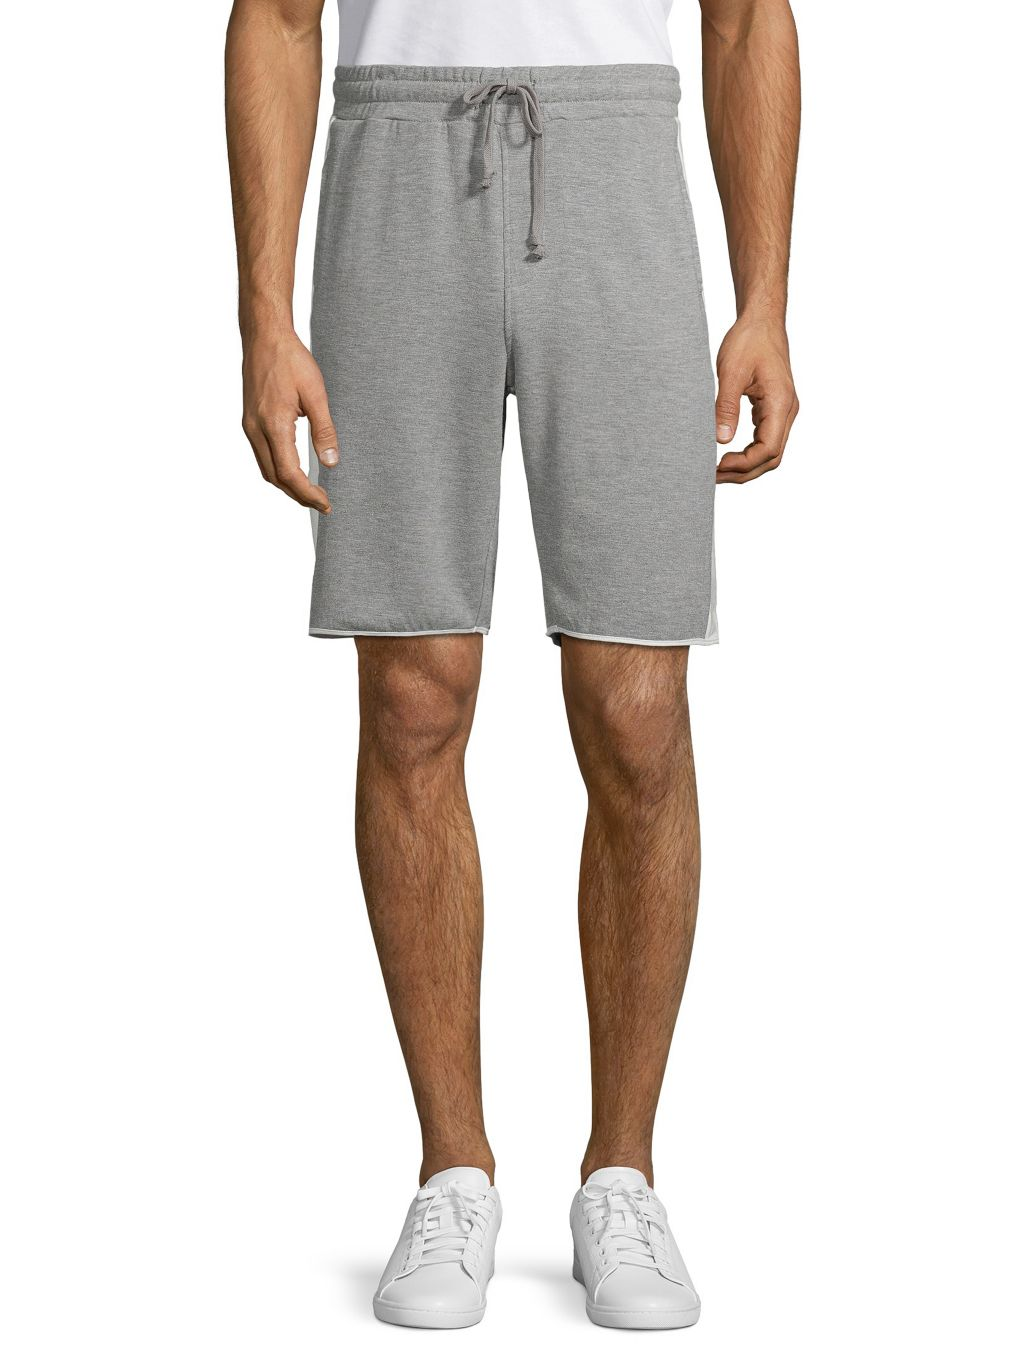 Threads 4 Thought Stretch Drawstring Shorts